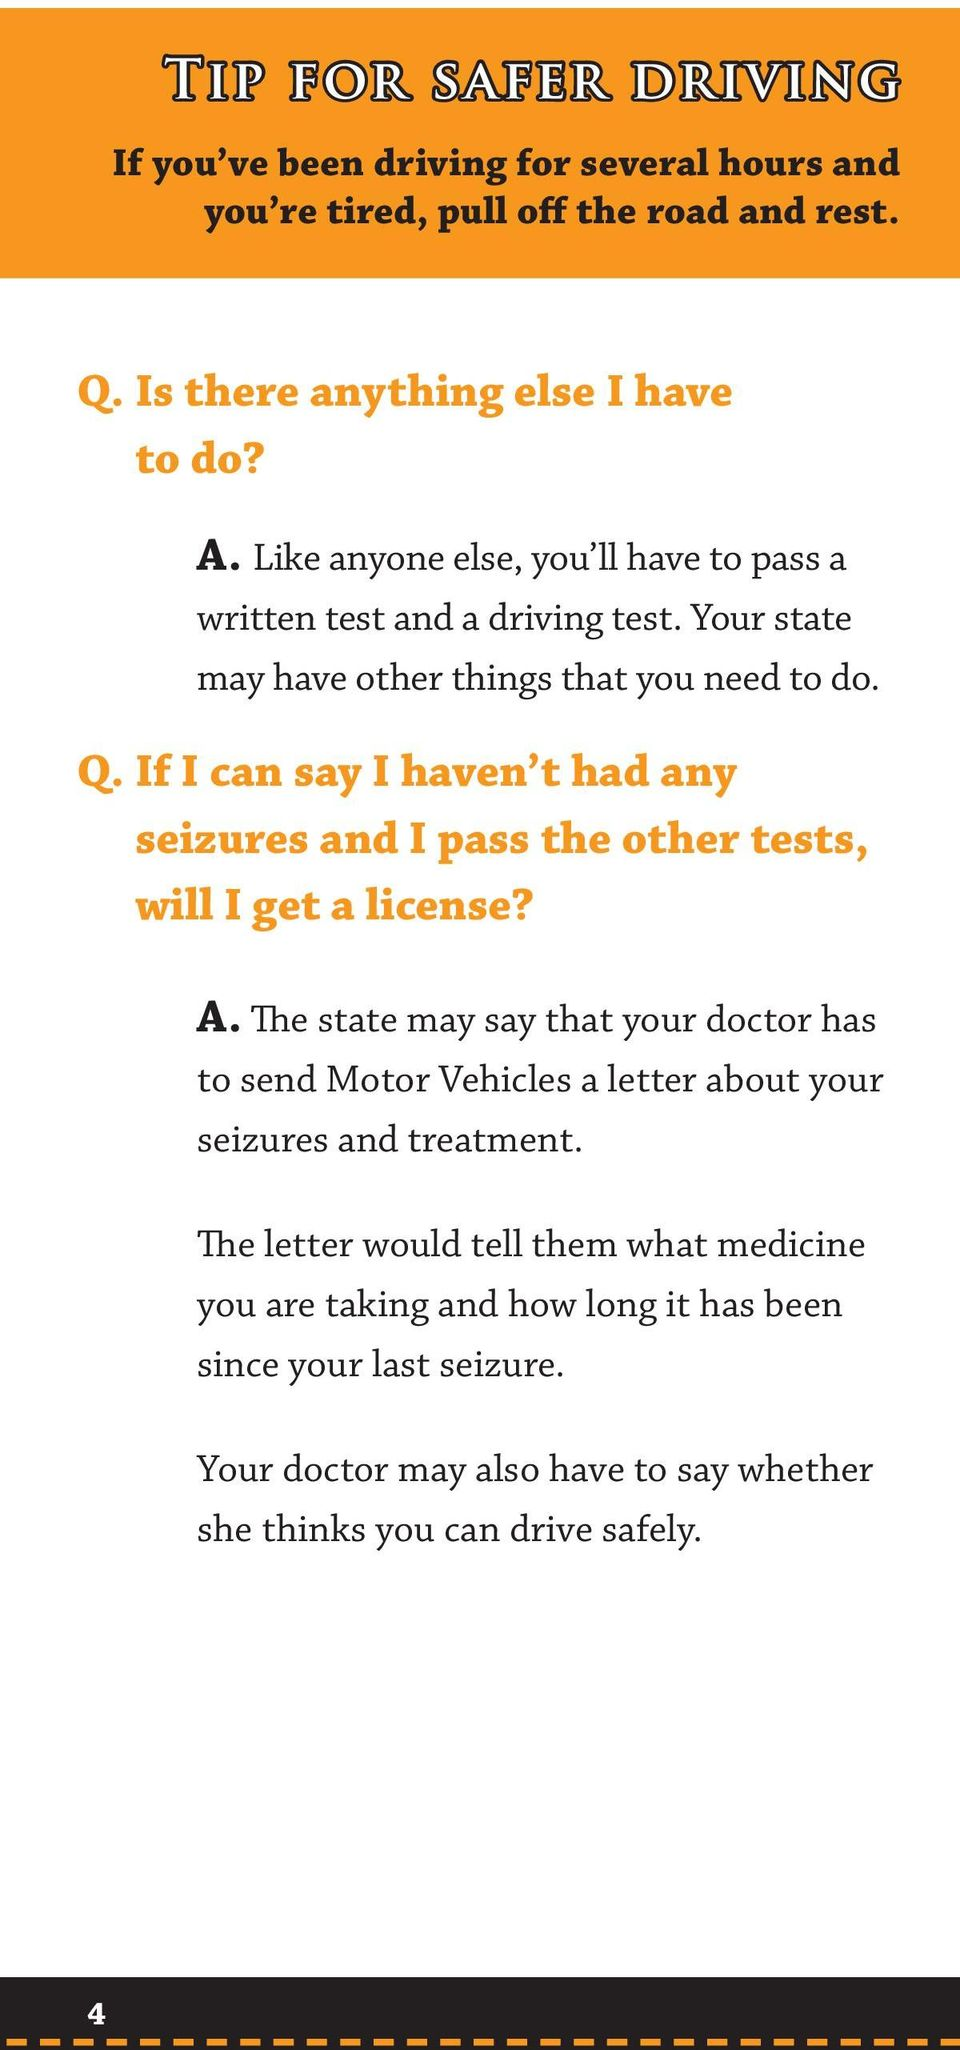 If I can say I haven t had any seizures and I pass the other tests, will I get a license? A.